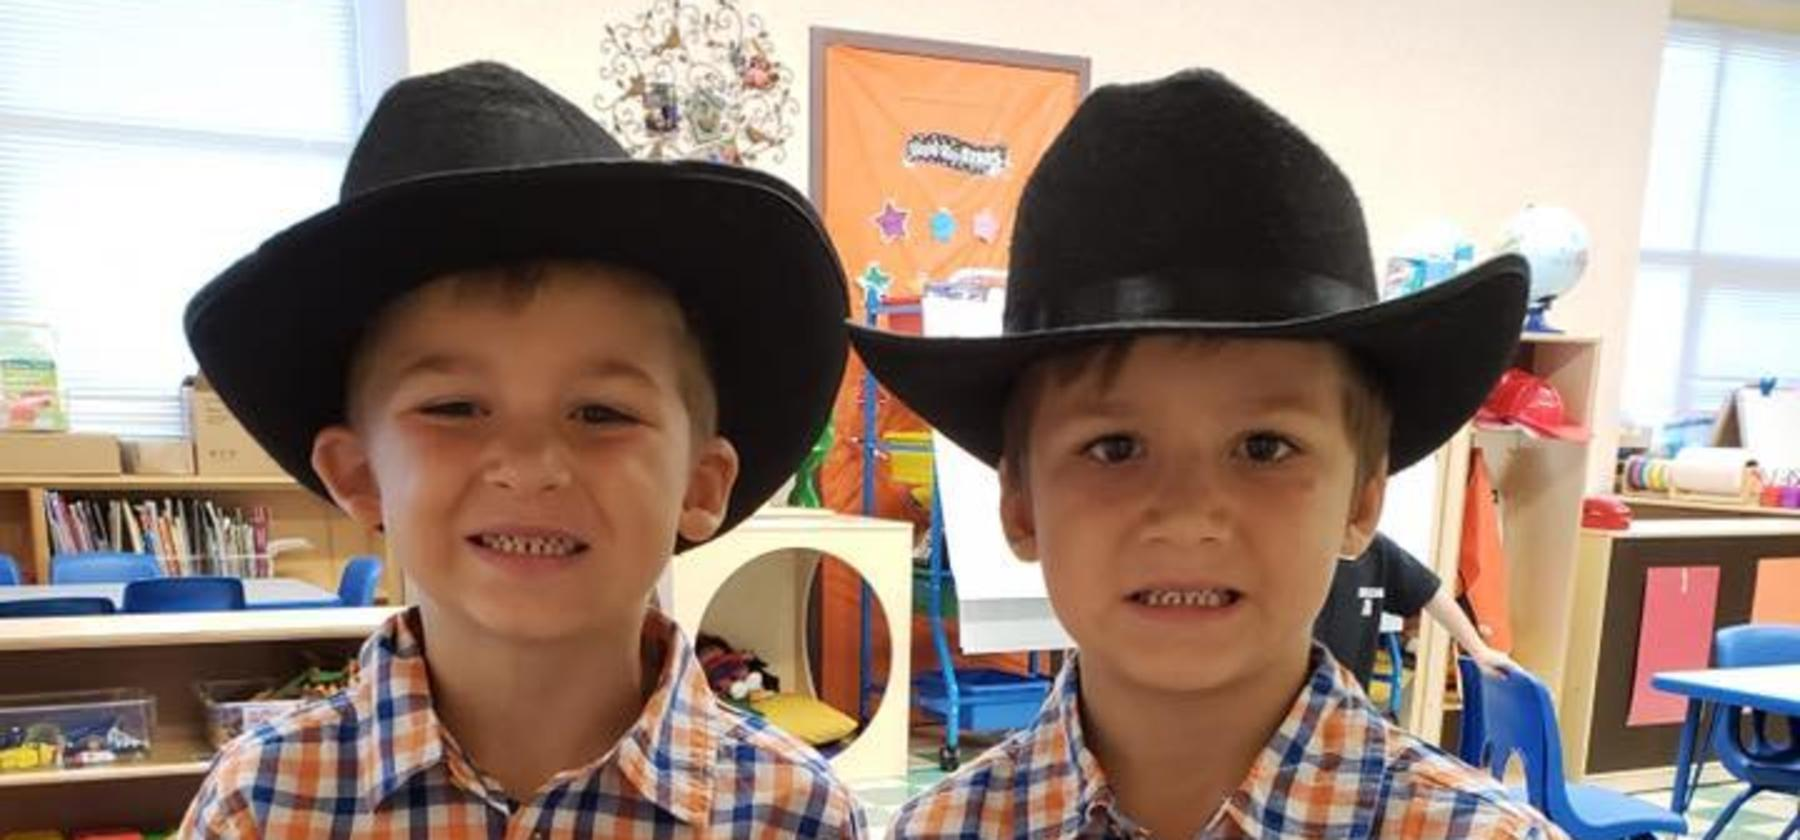 twins in cowboy hats